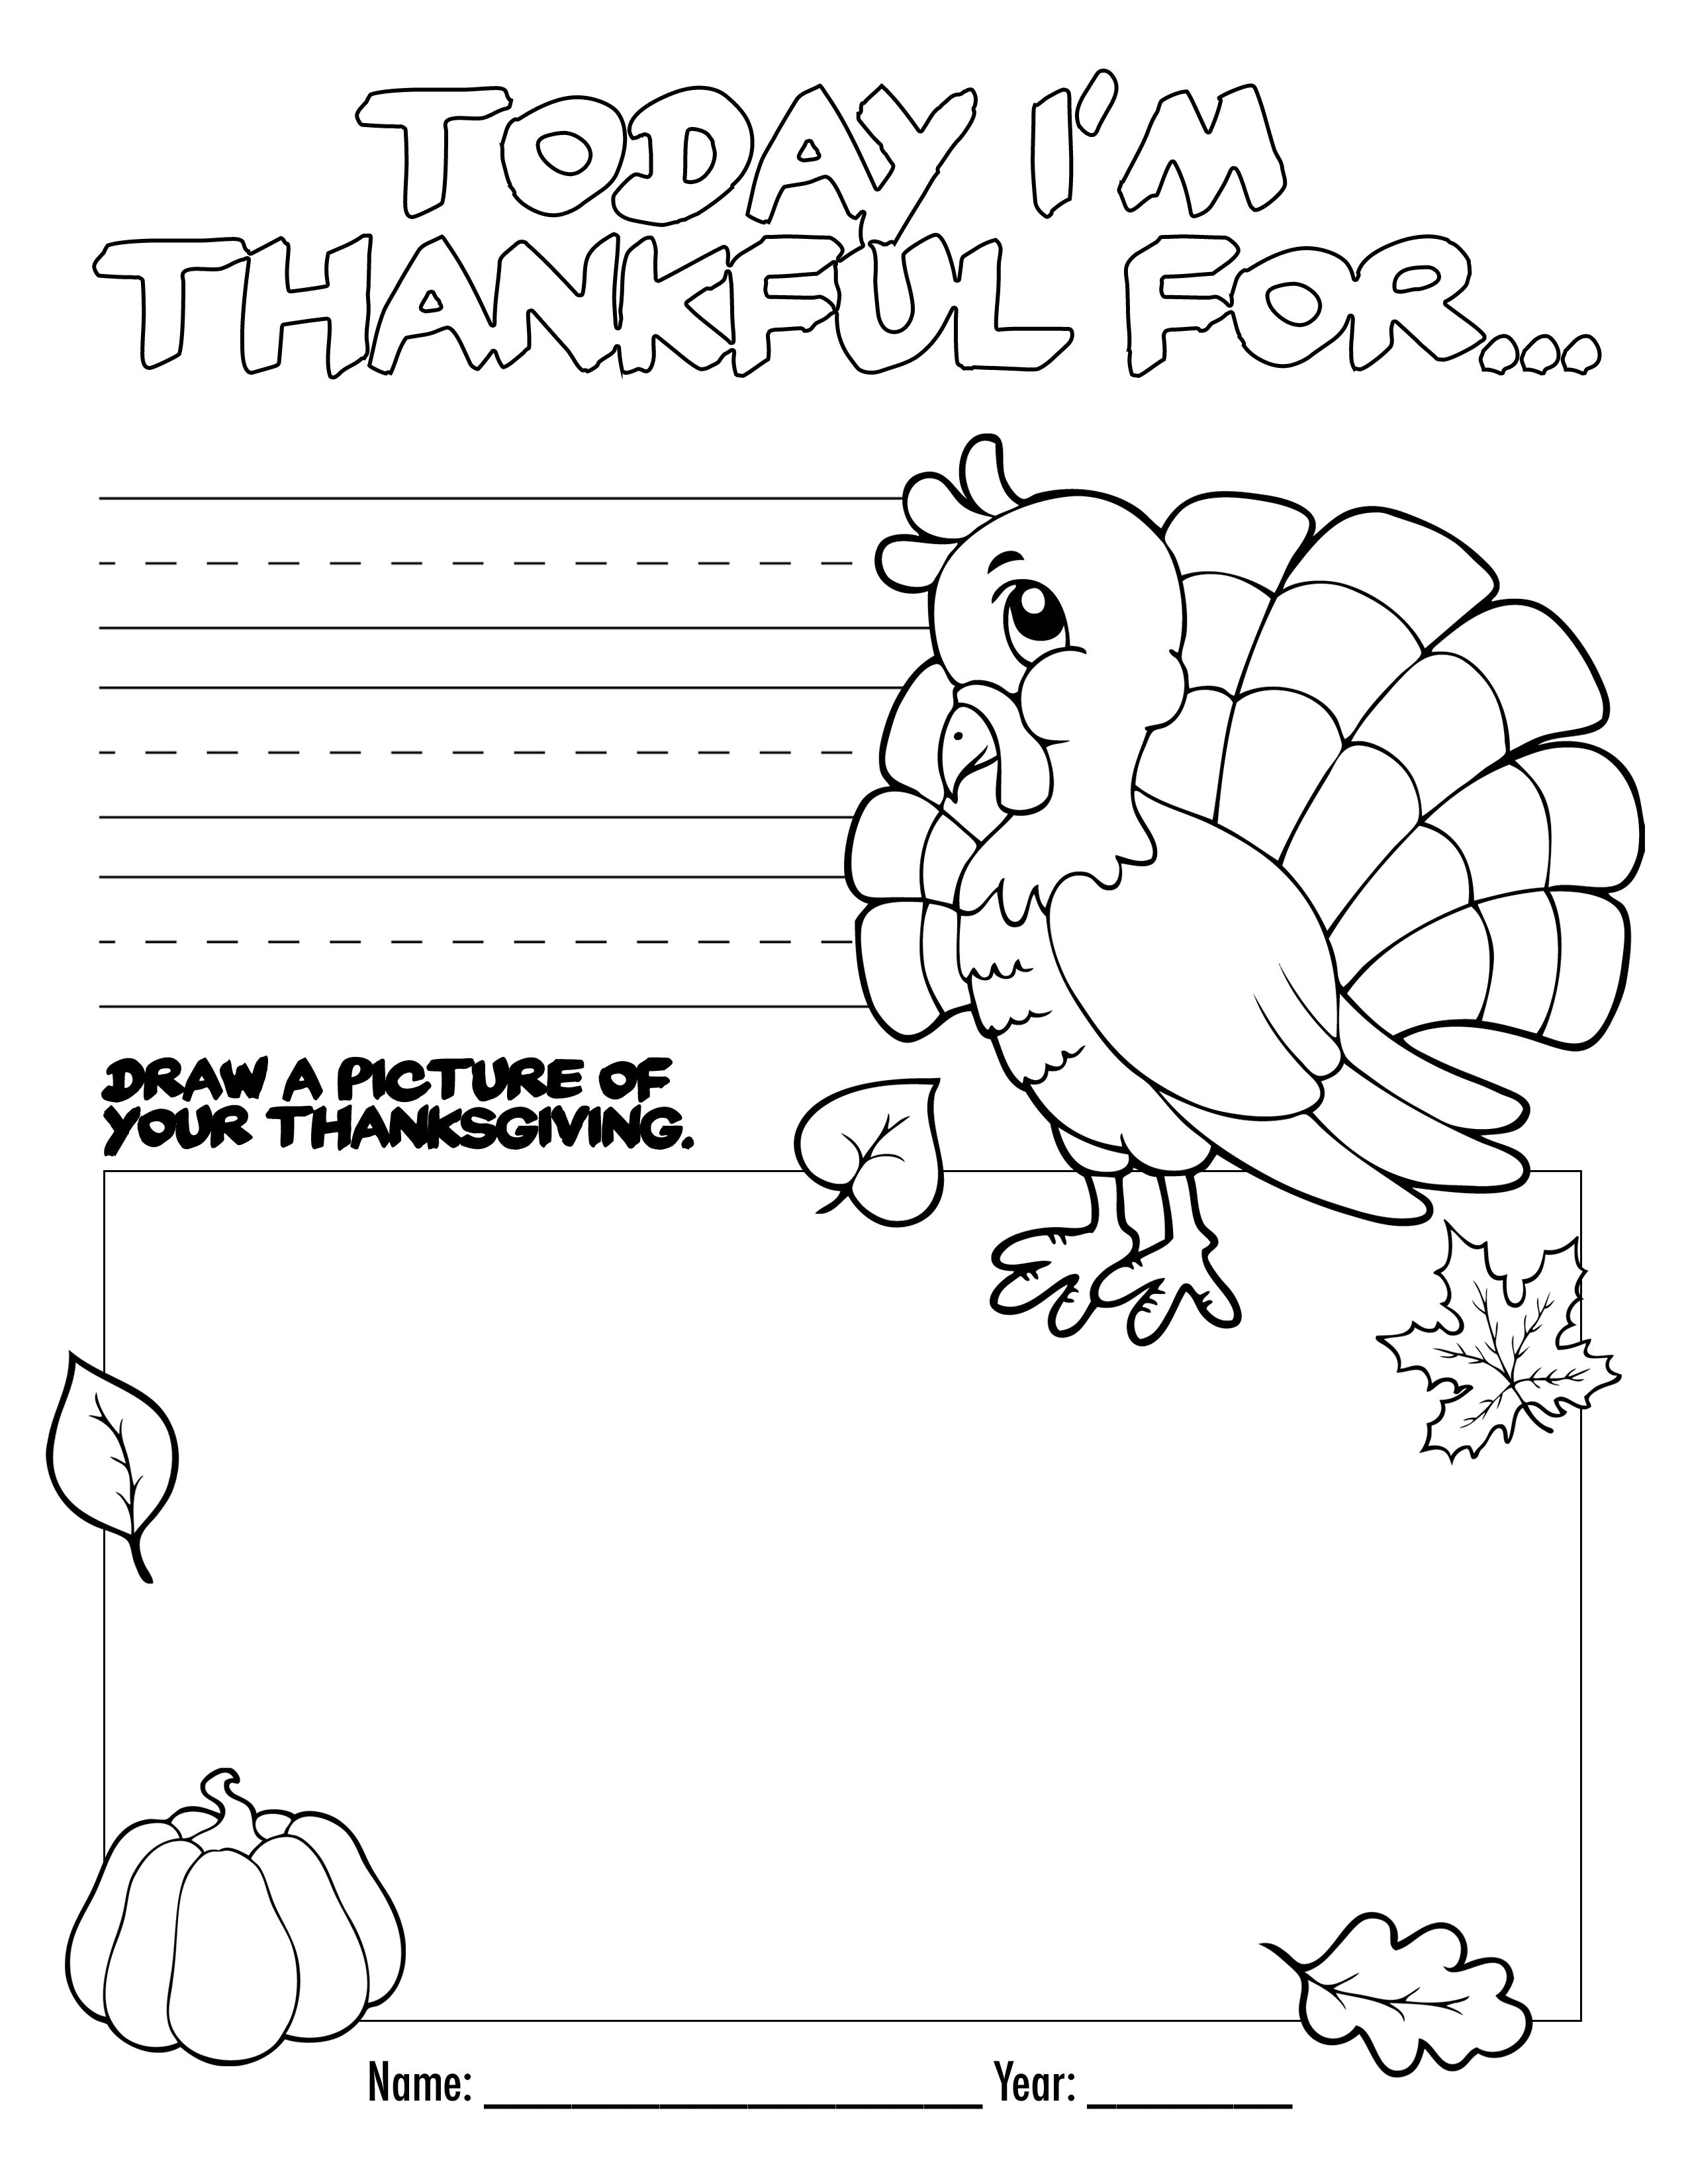 Thanksgiving Coloring Book Free Printable For The Kids! | Bloggers - Free Printable Kindergarten Thanksgiving Activities